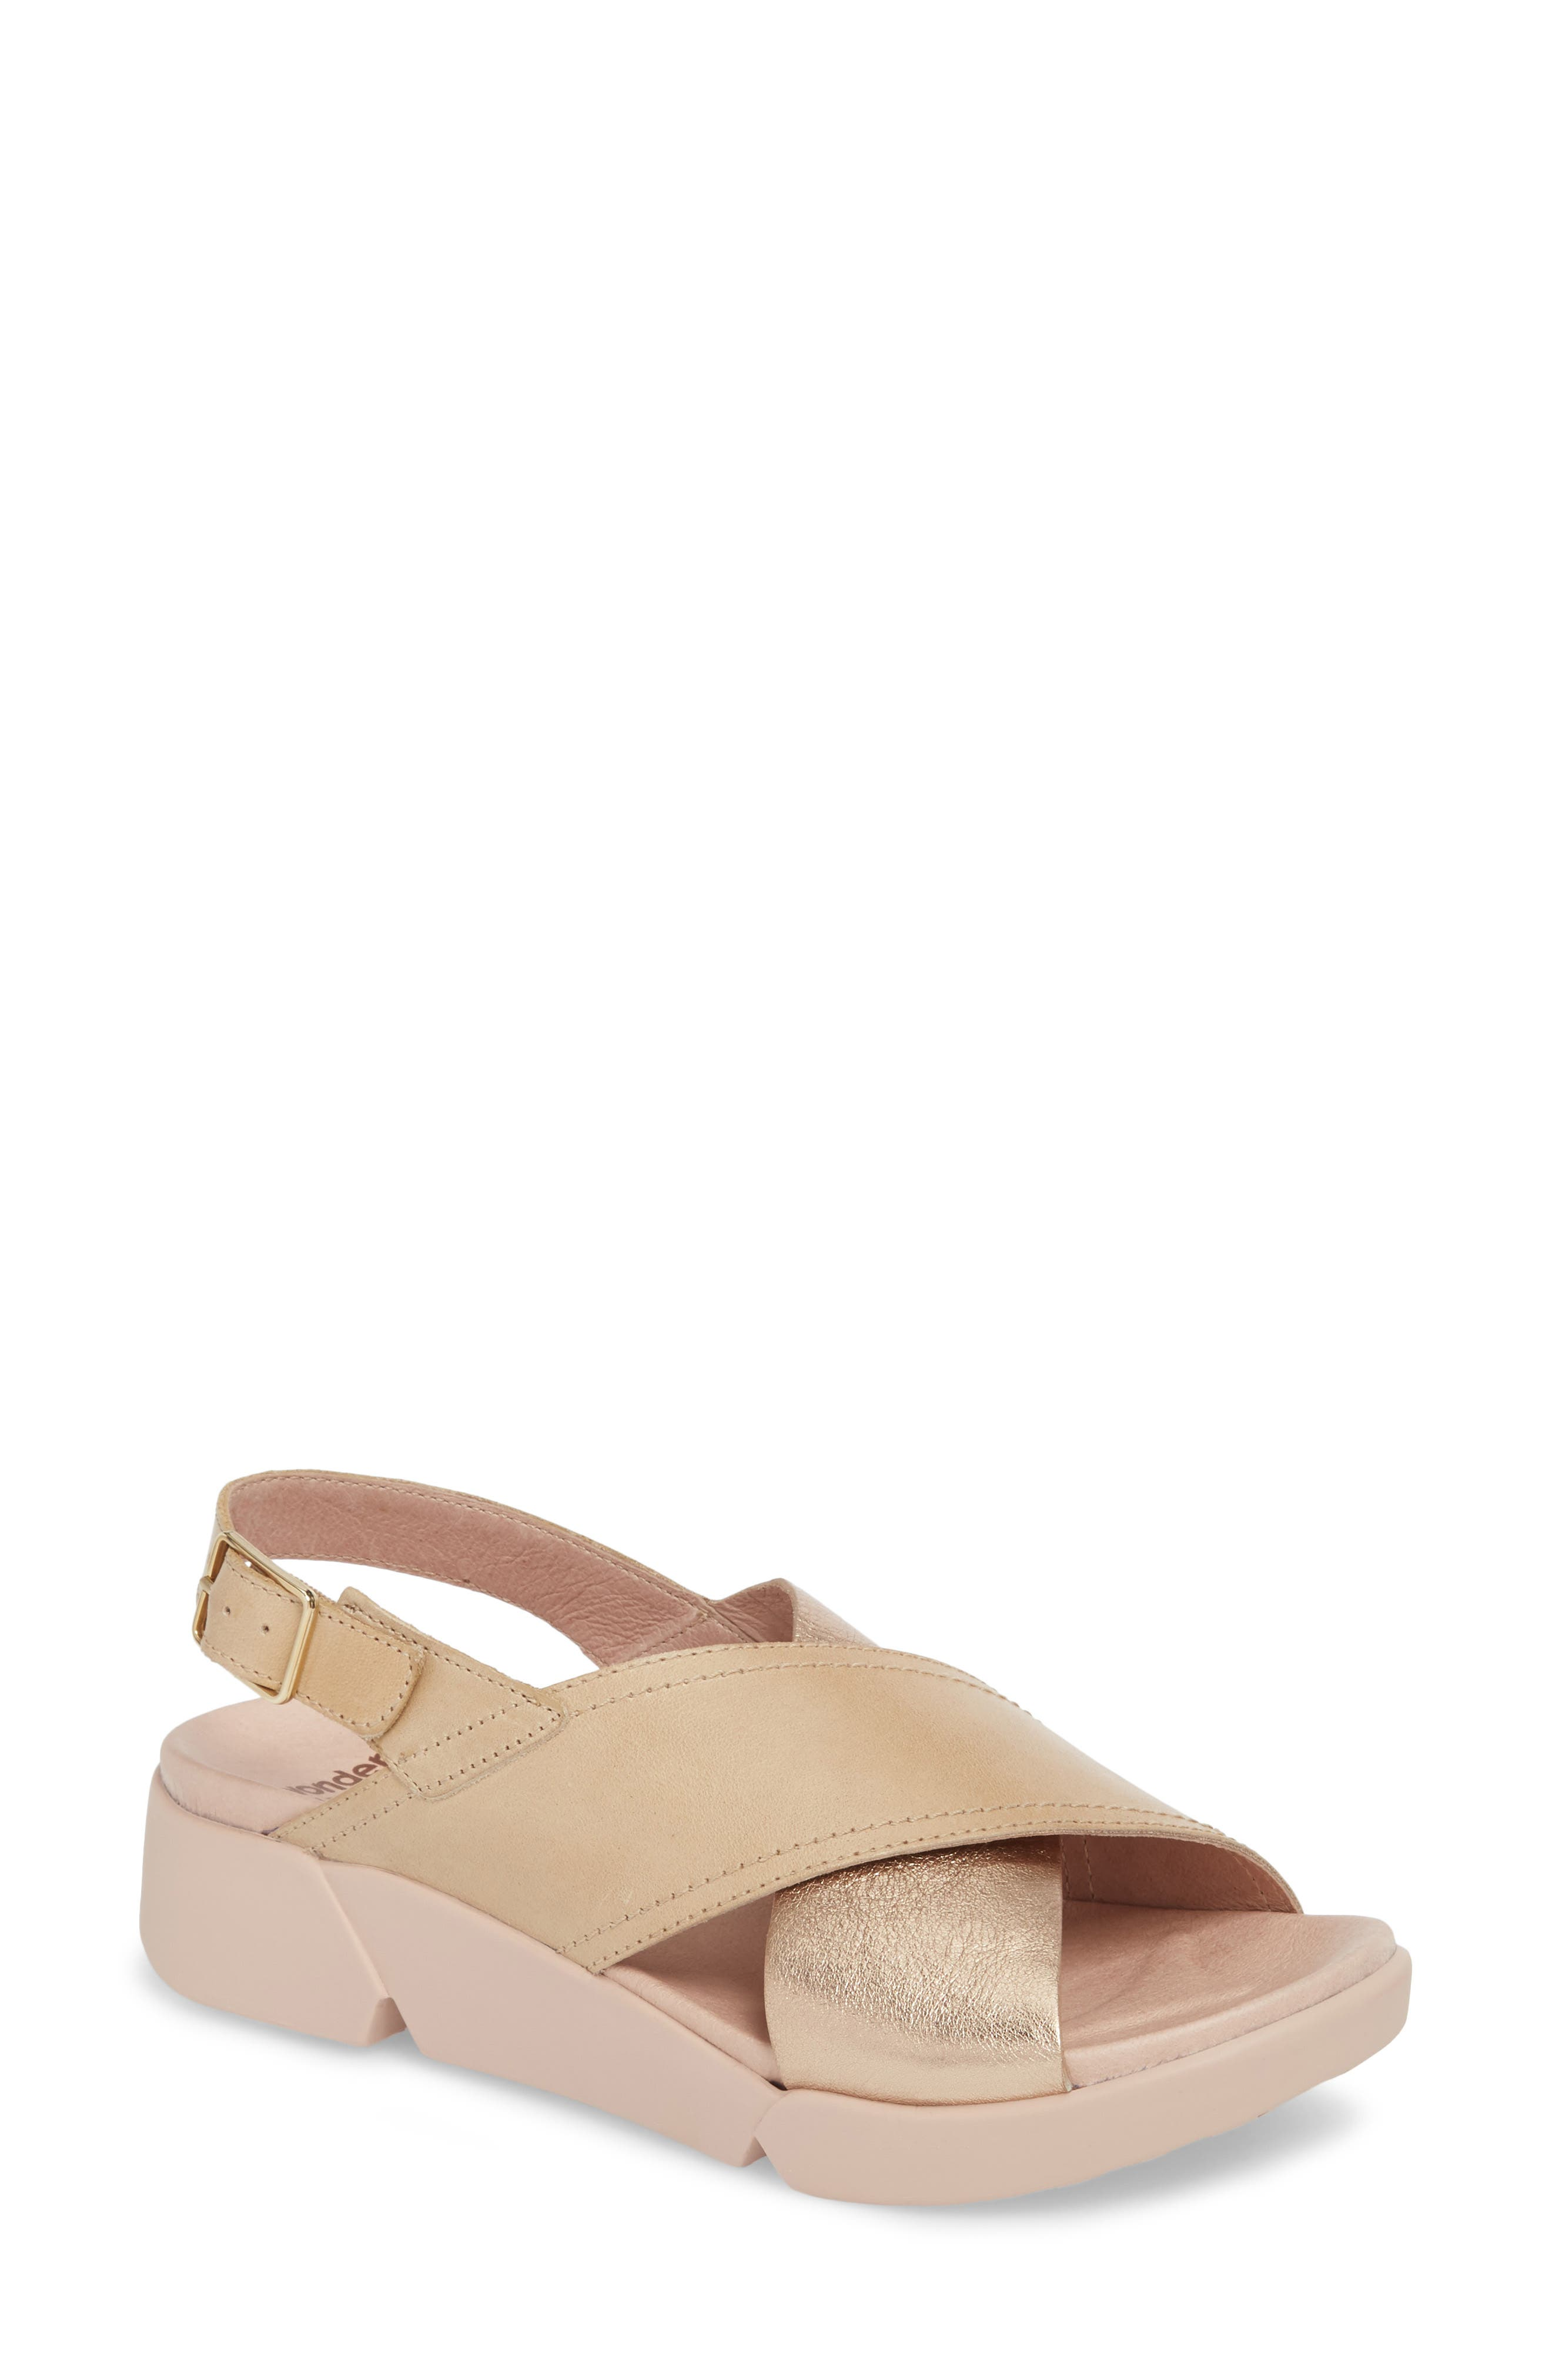 Wonders Platform Wedge Sandal - Beige